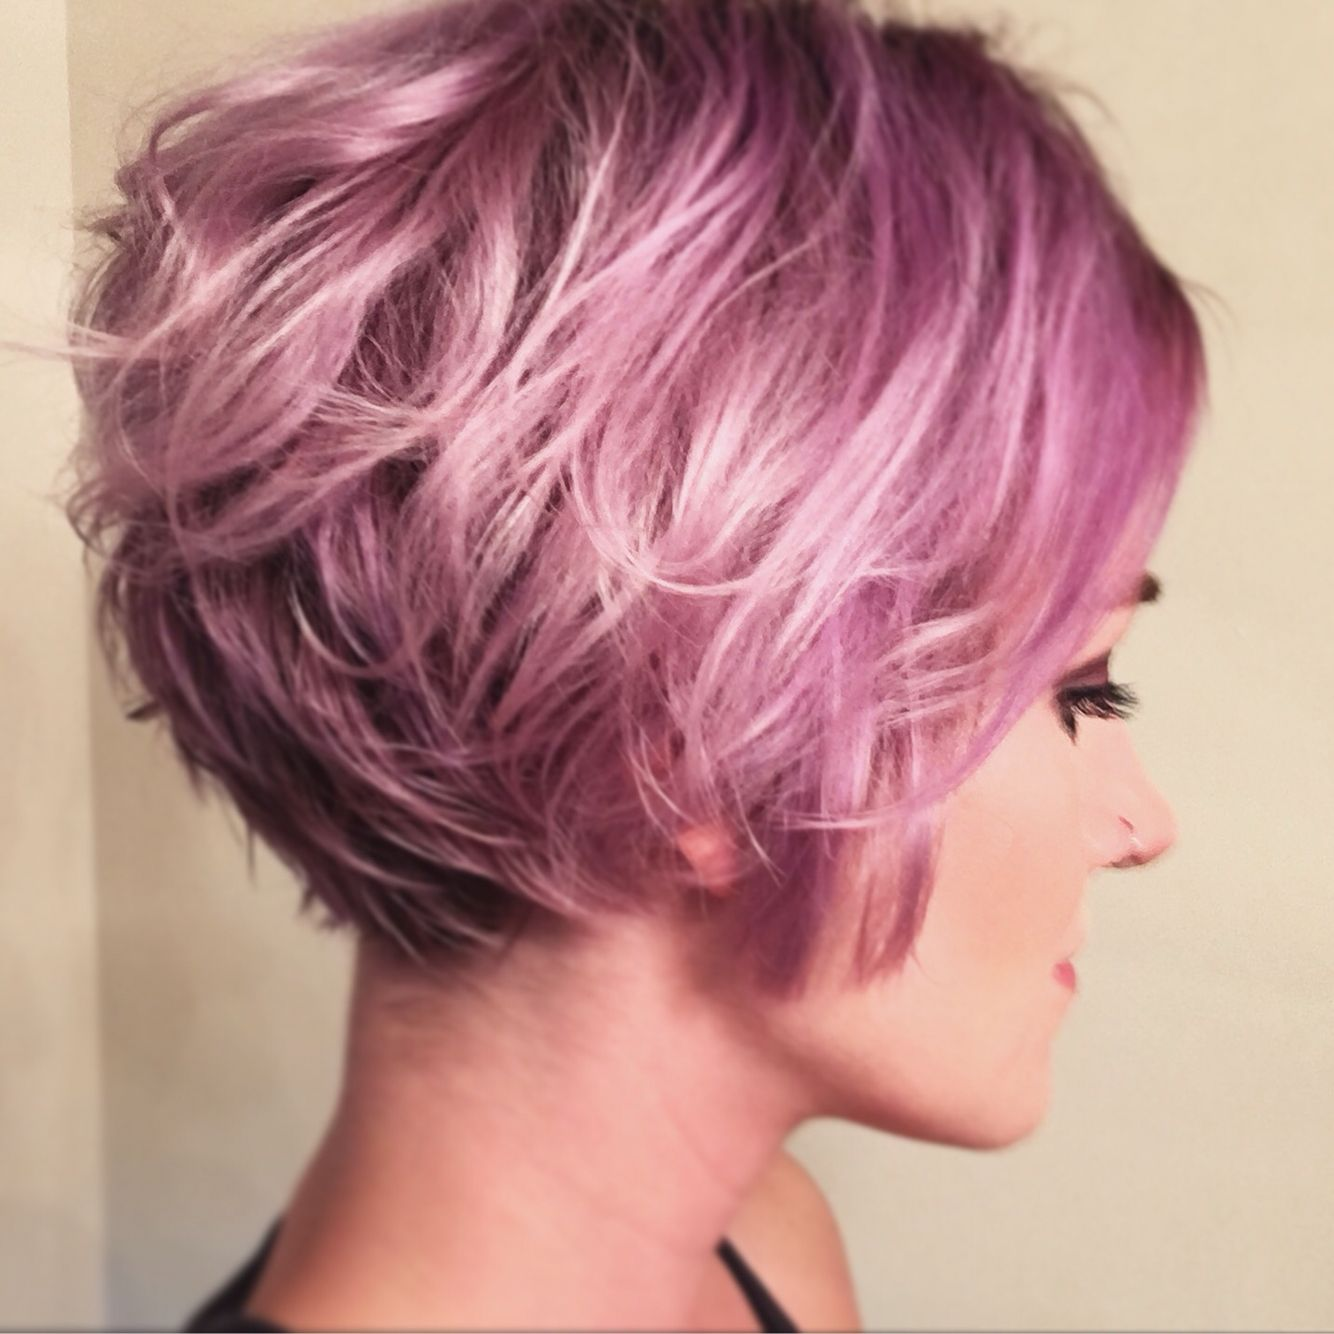 Lilac/Lavender short hair using Overtone products in Pastel Purple & Pink.